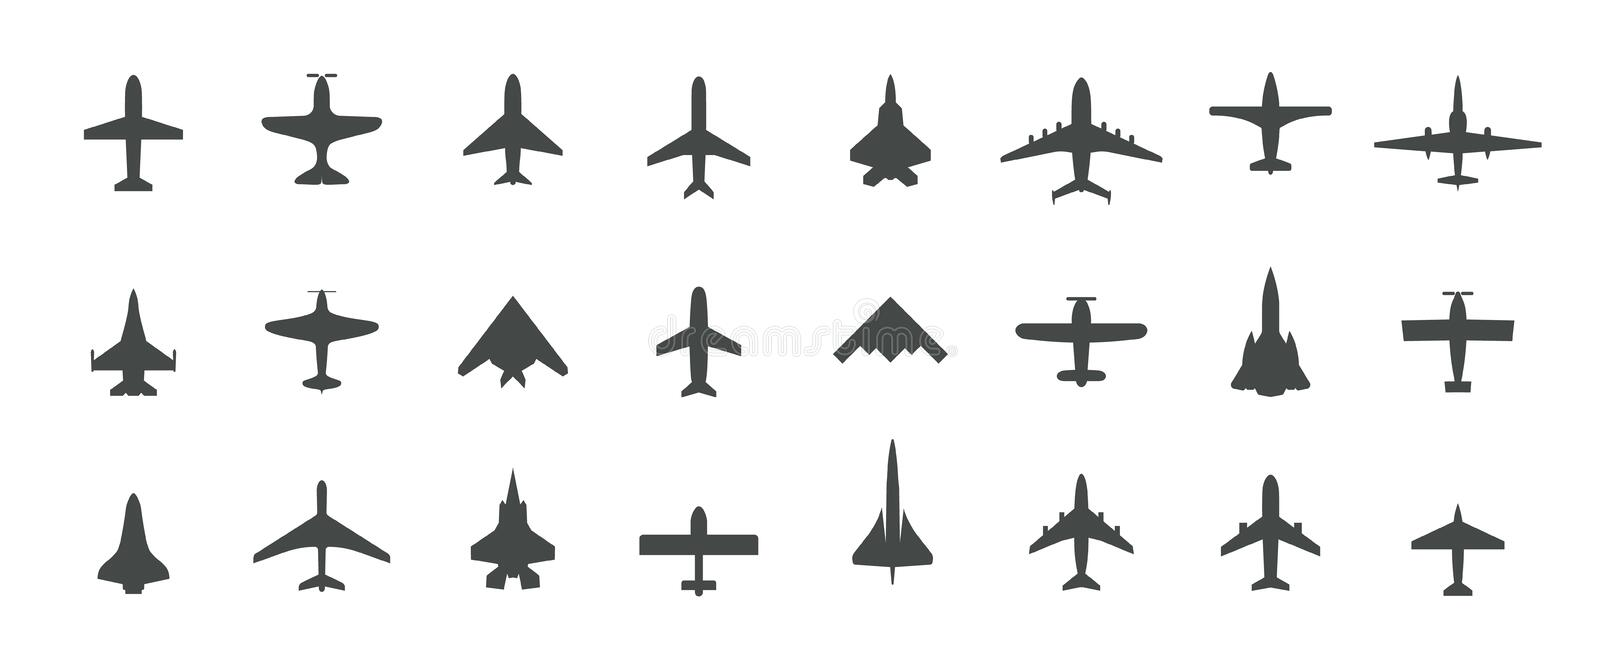 Aircraft top view icon set. Set of black silhouette airplanes, jets, airliners and retro planes icons. Isolated vector. Logos template on white background royalty free illustration